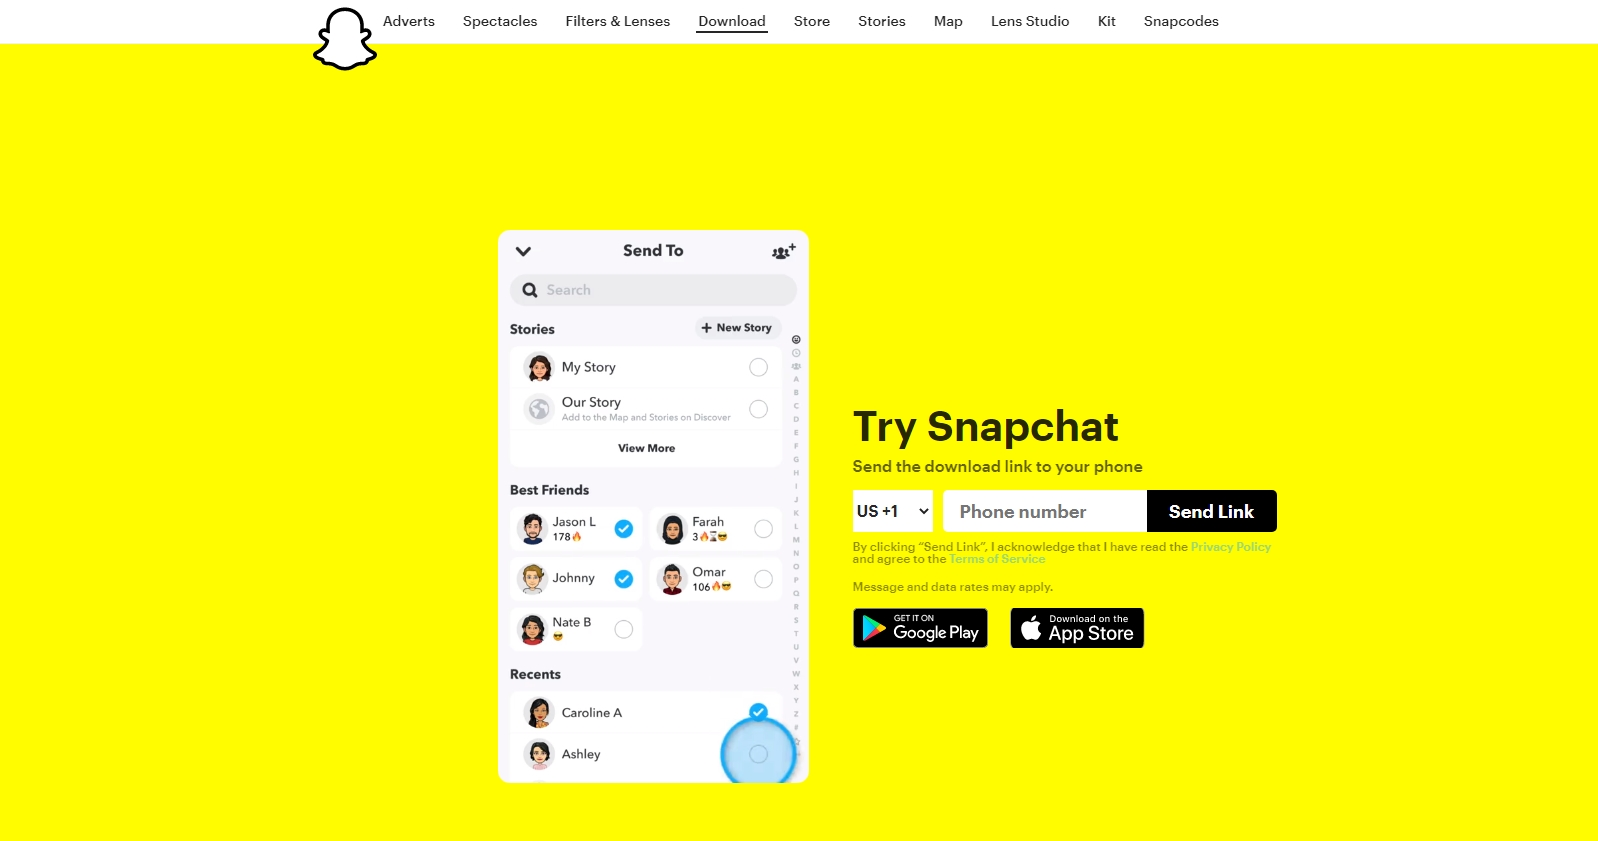 How to Download Snapchat